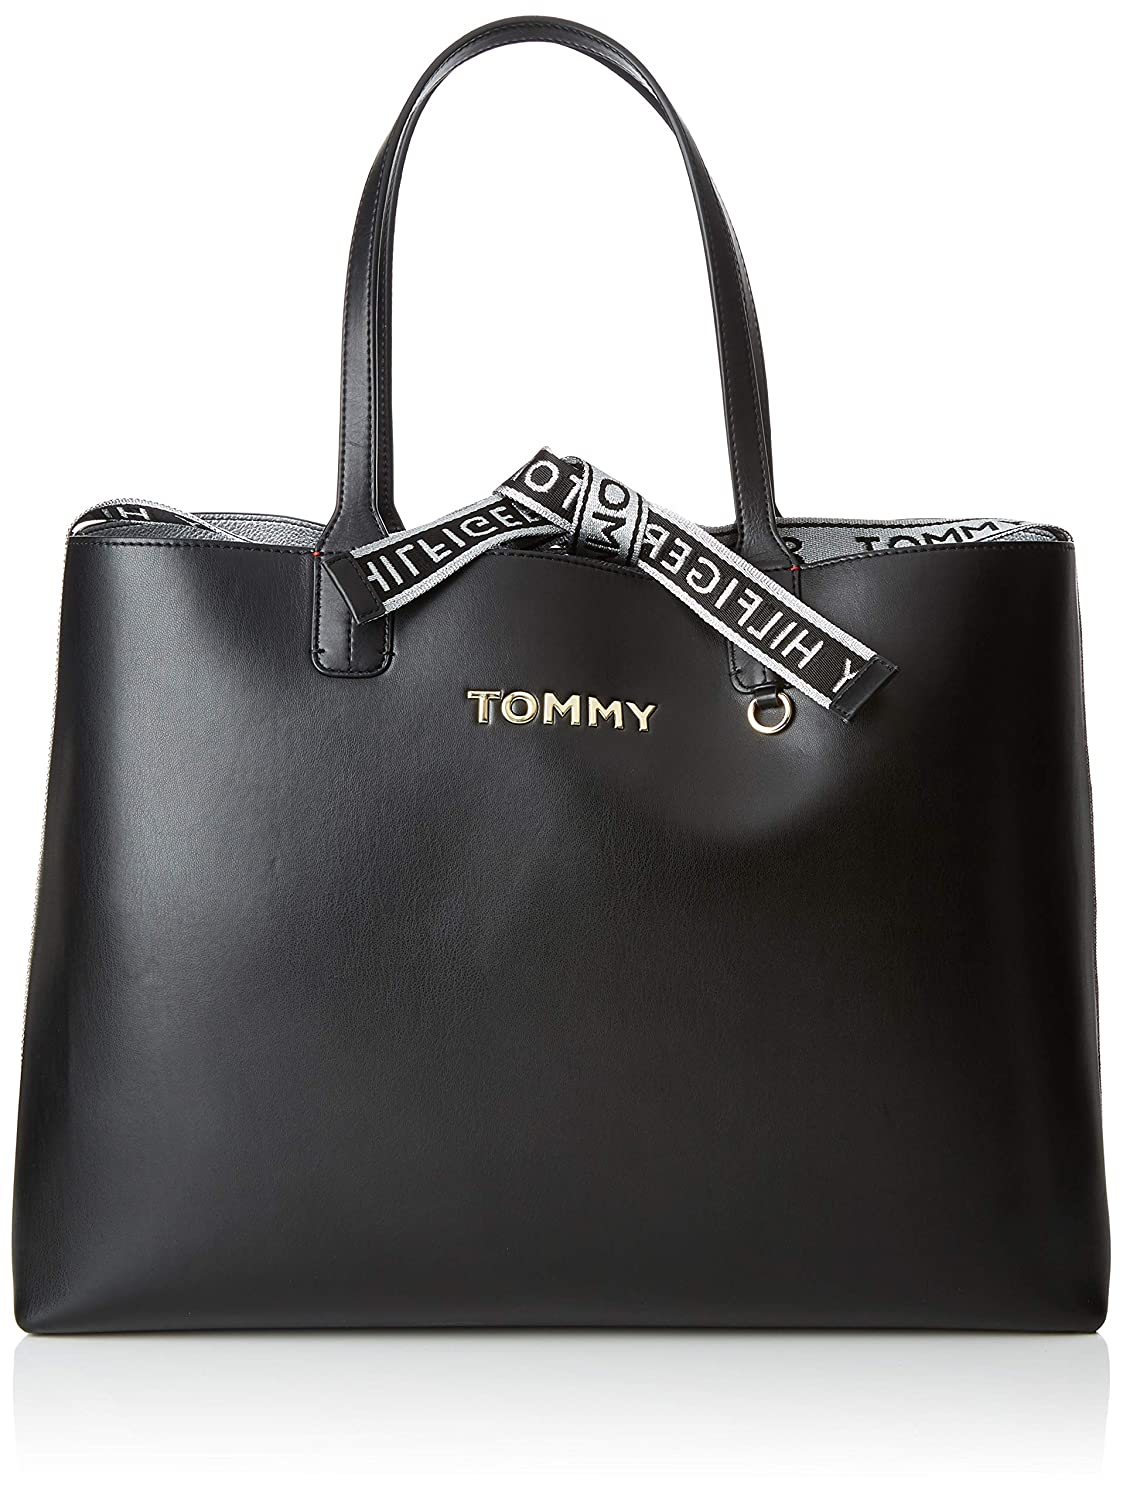 dcc392ee Tommy Hilfiger Iconic Tote, Women's Black, 13x30.5x43 cm (B x H T):  Amazon.co.uk: Shoes & Bags